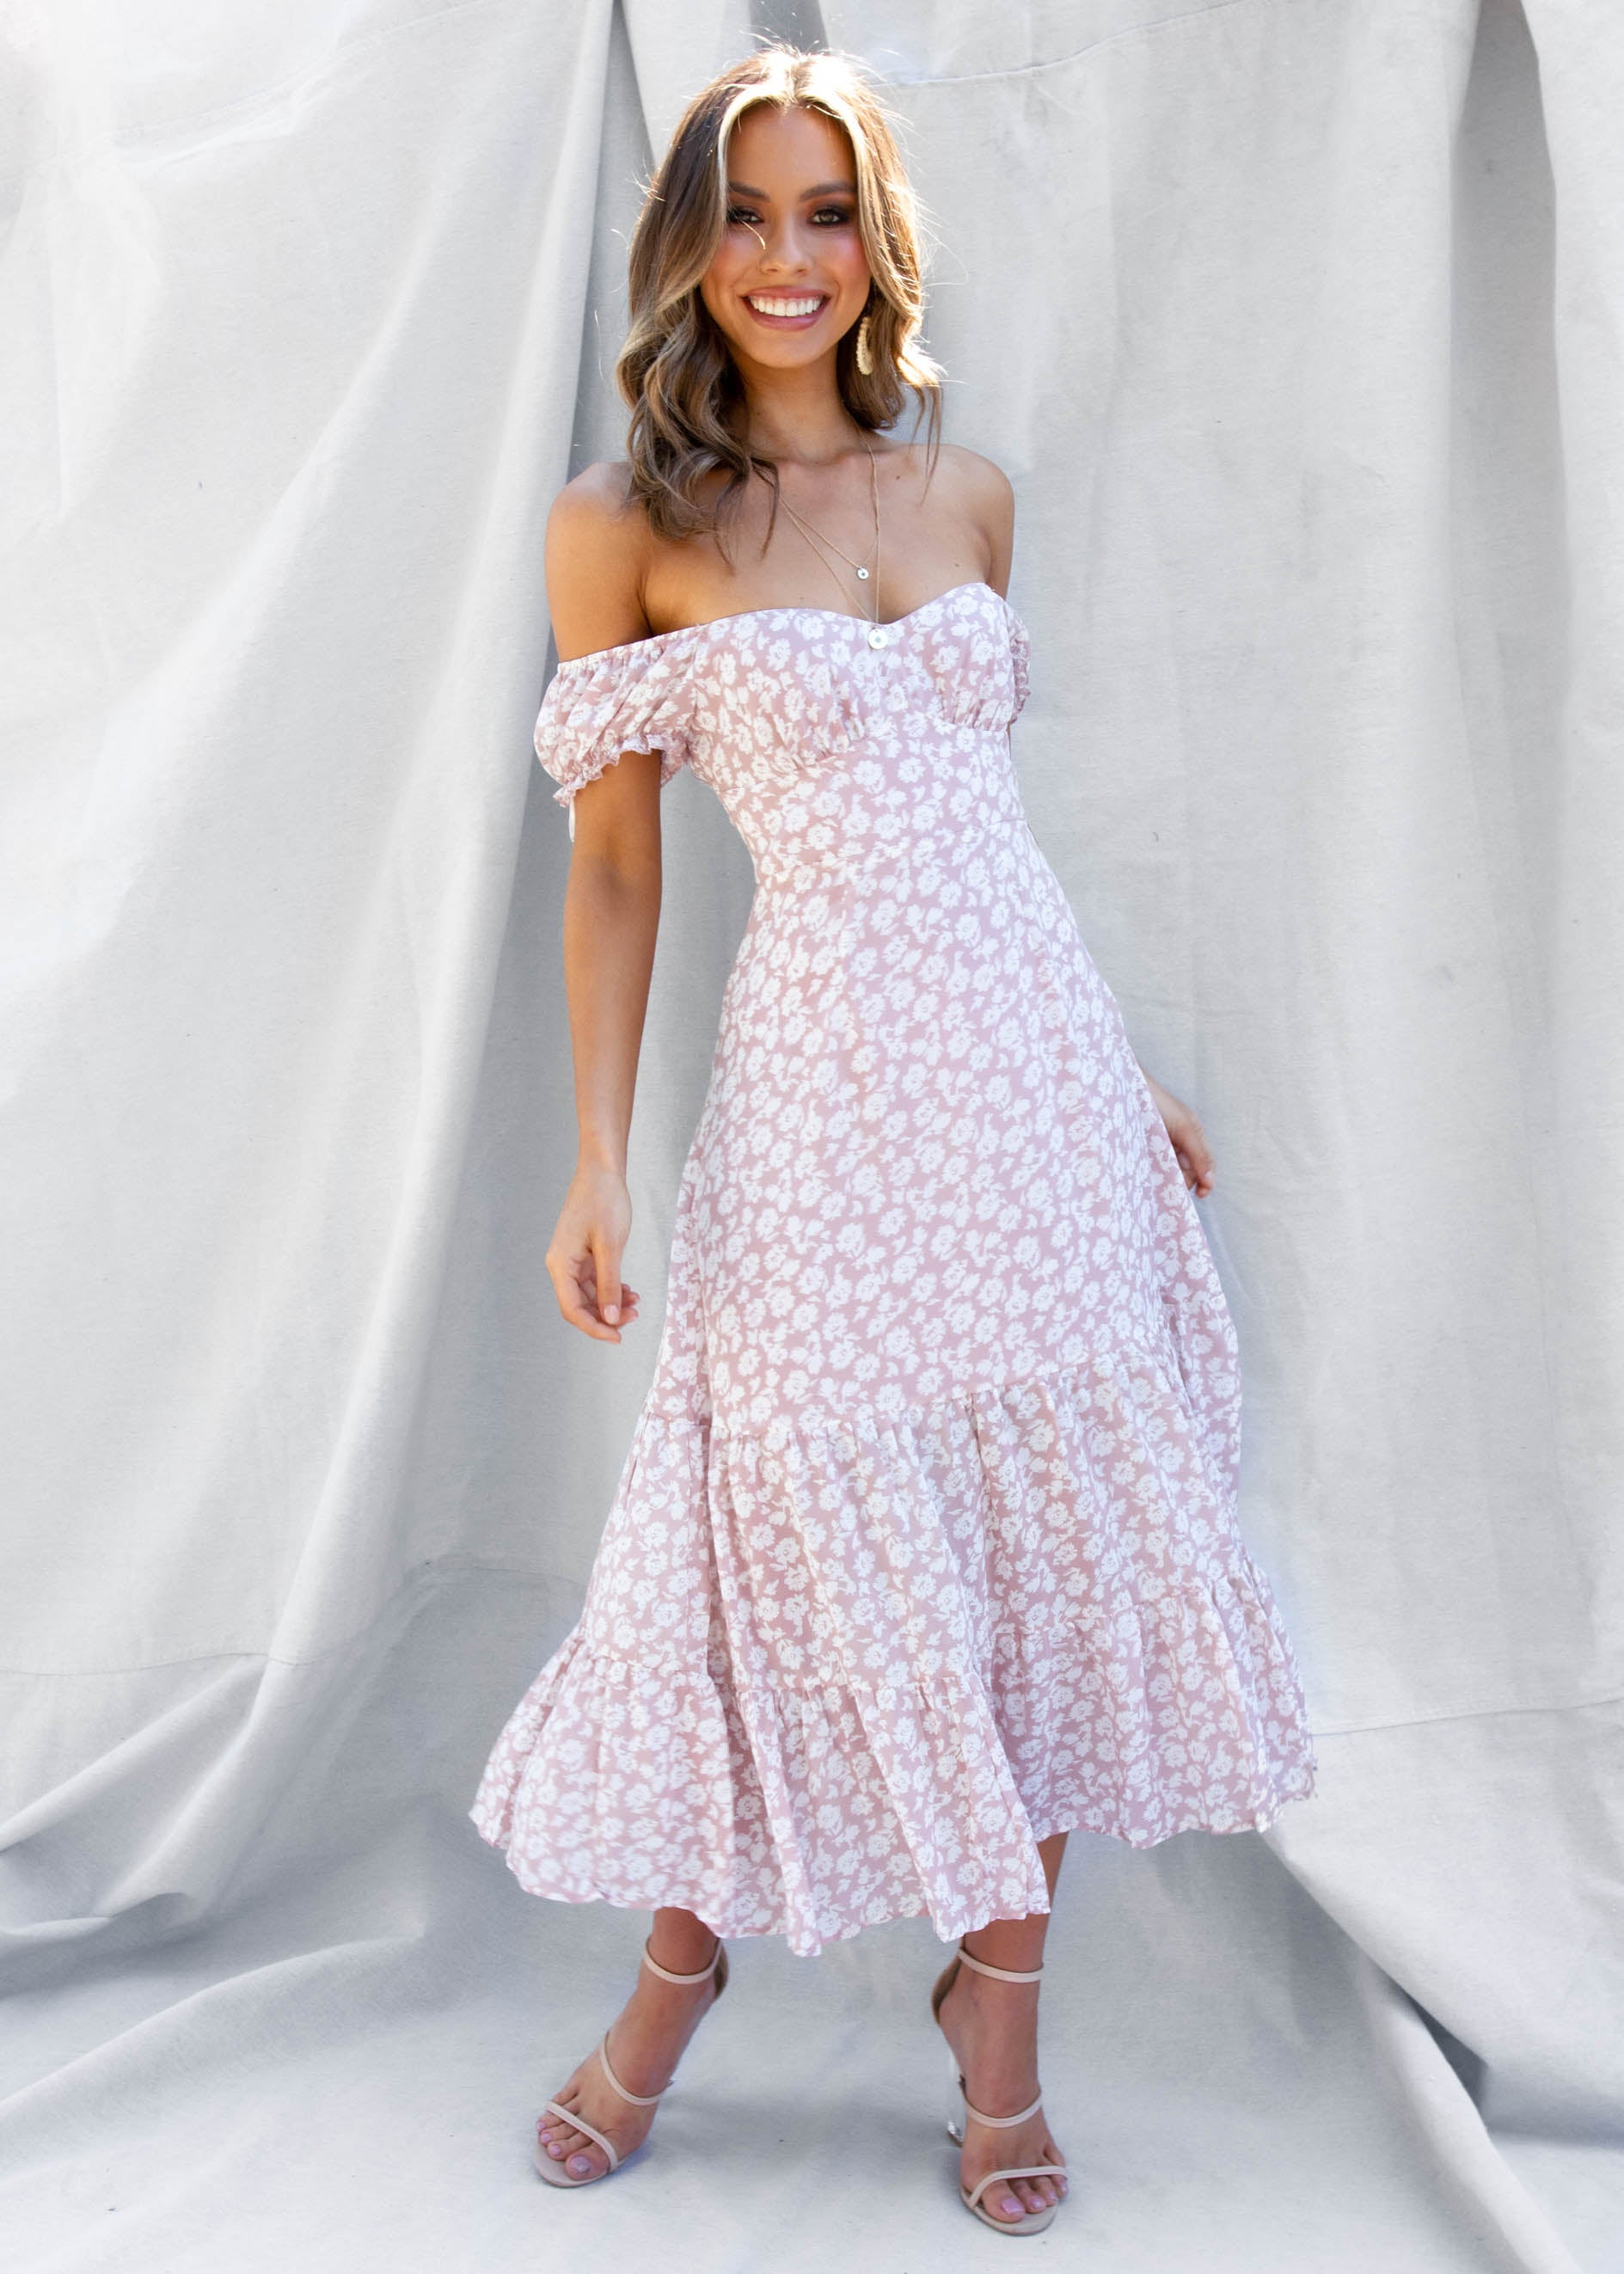 When In Rome Midi Dress - Blush Floral